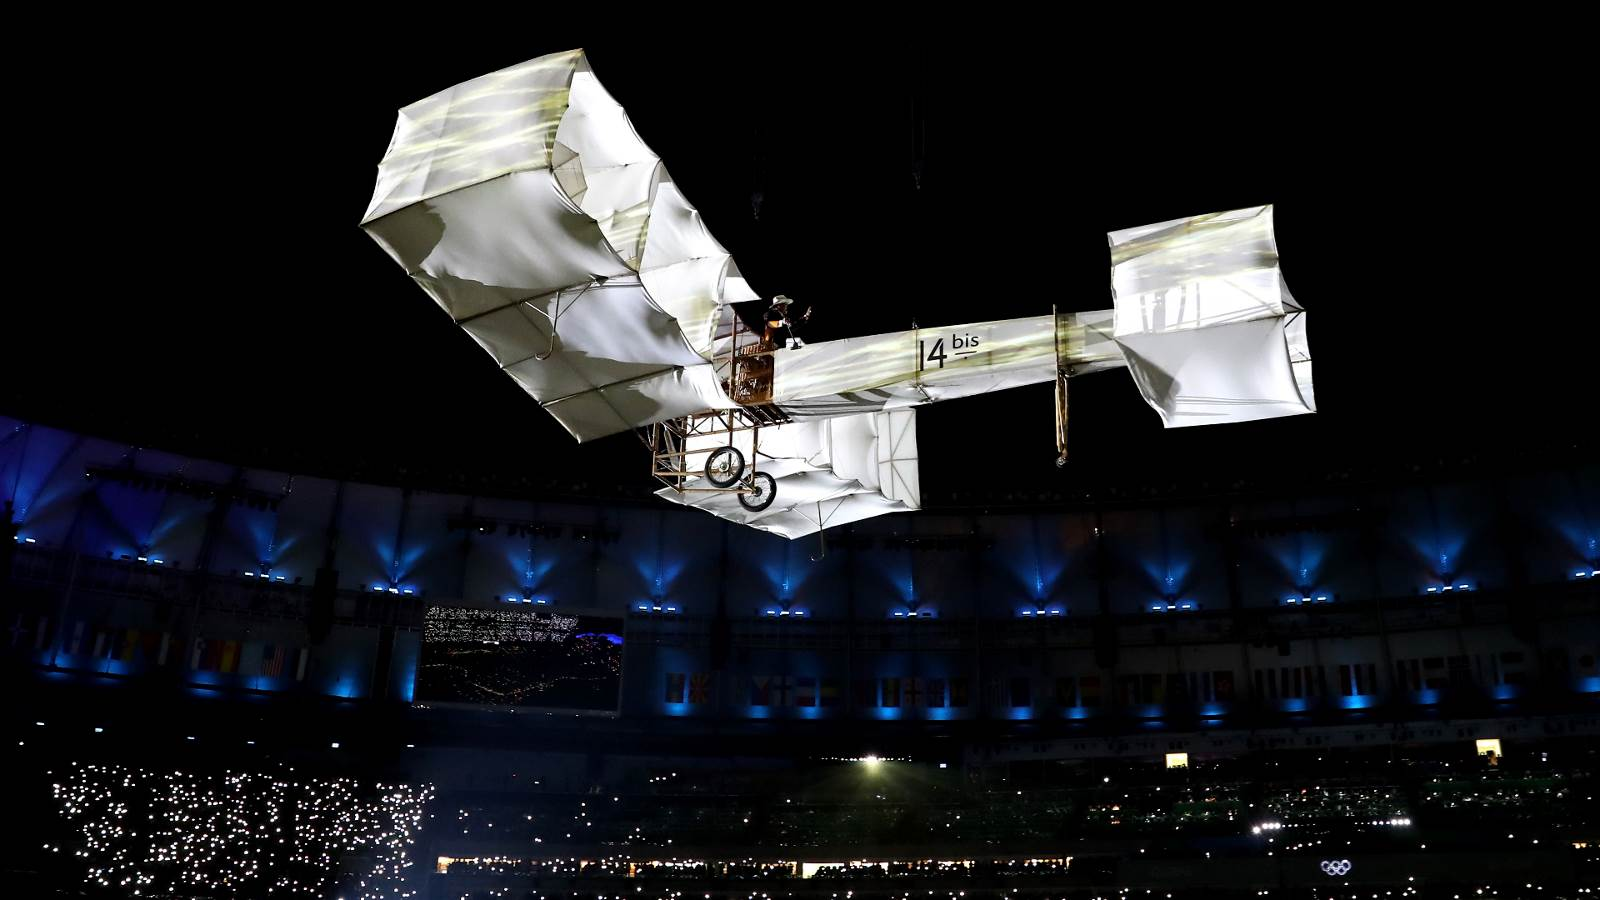 Alberto Santos-Dumont, known in Brazil as the 'Father of Aviation', is represented at the Opening Ceremony. (Getty Images/Ezra Shaw)